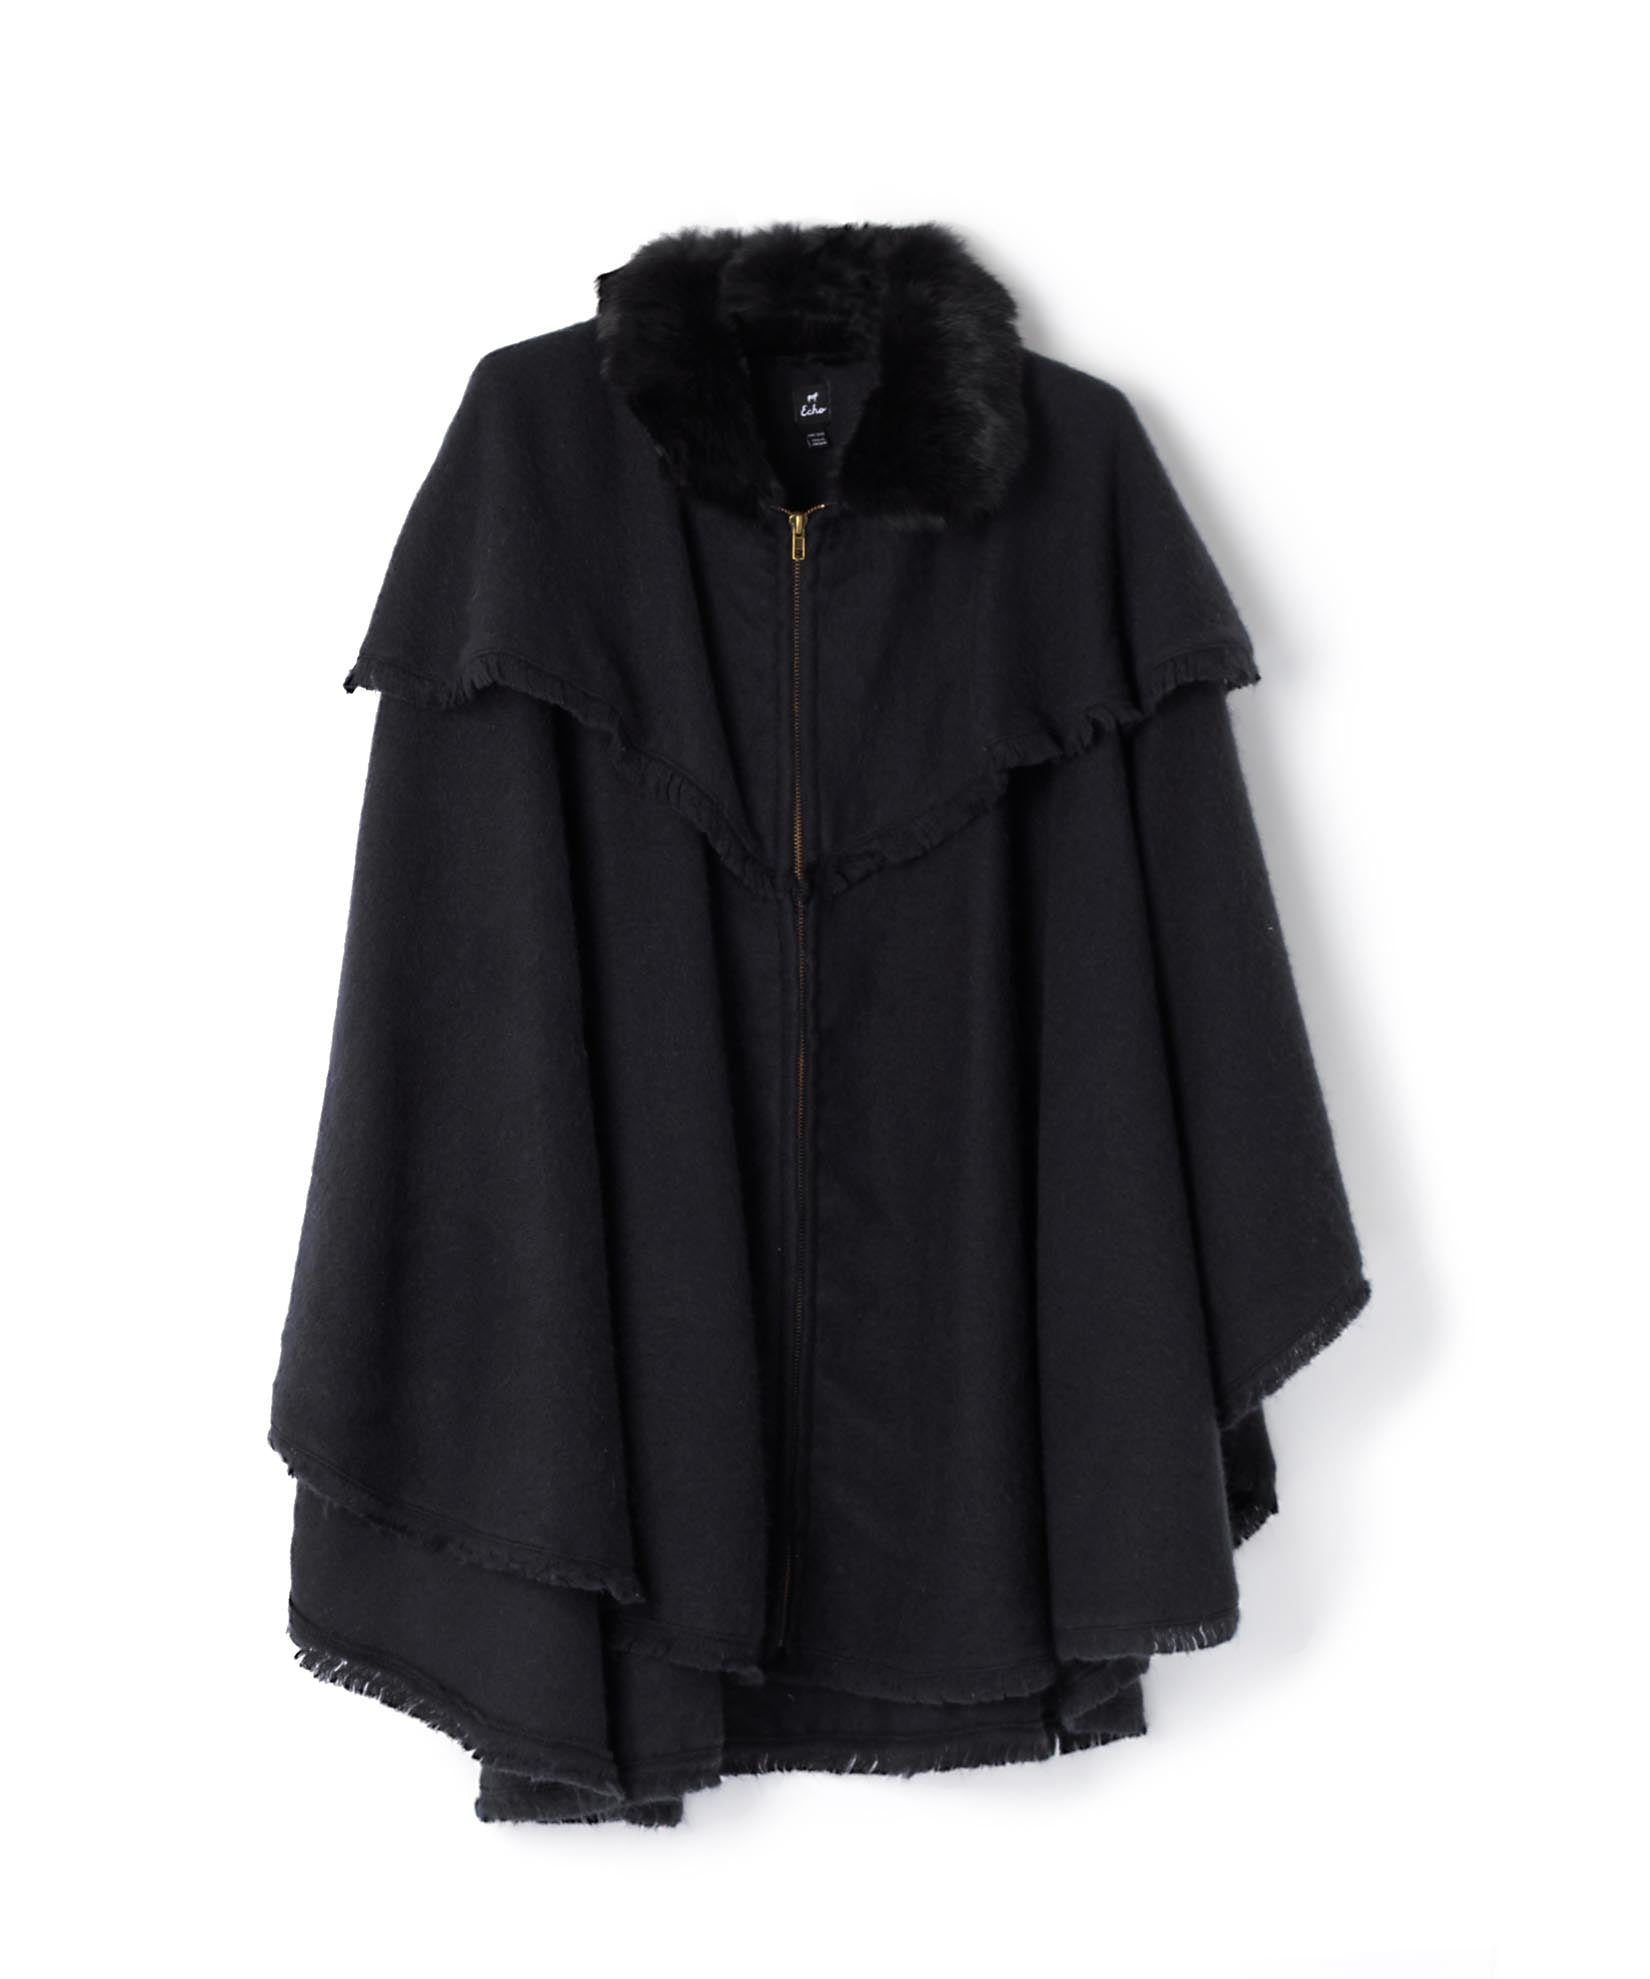 Black - Fur Collar Zipper Poncho